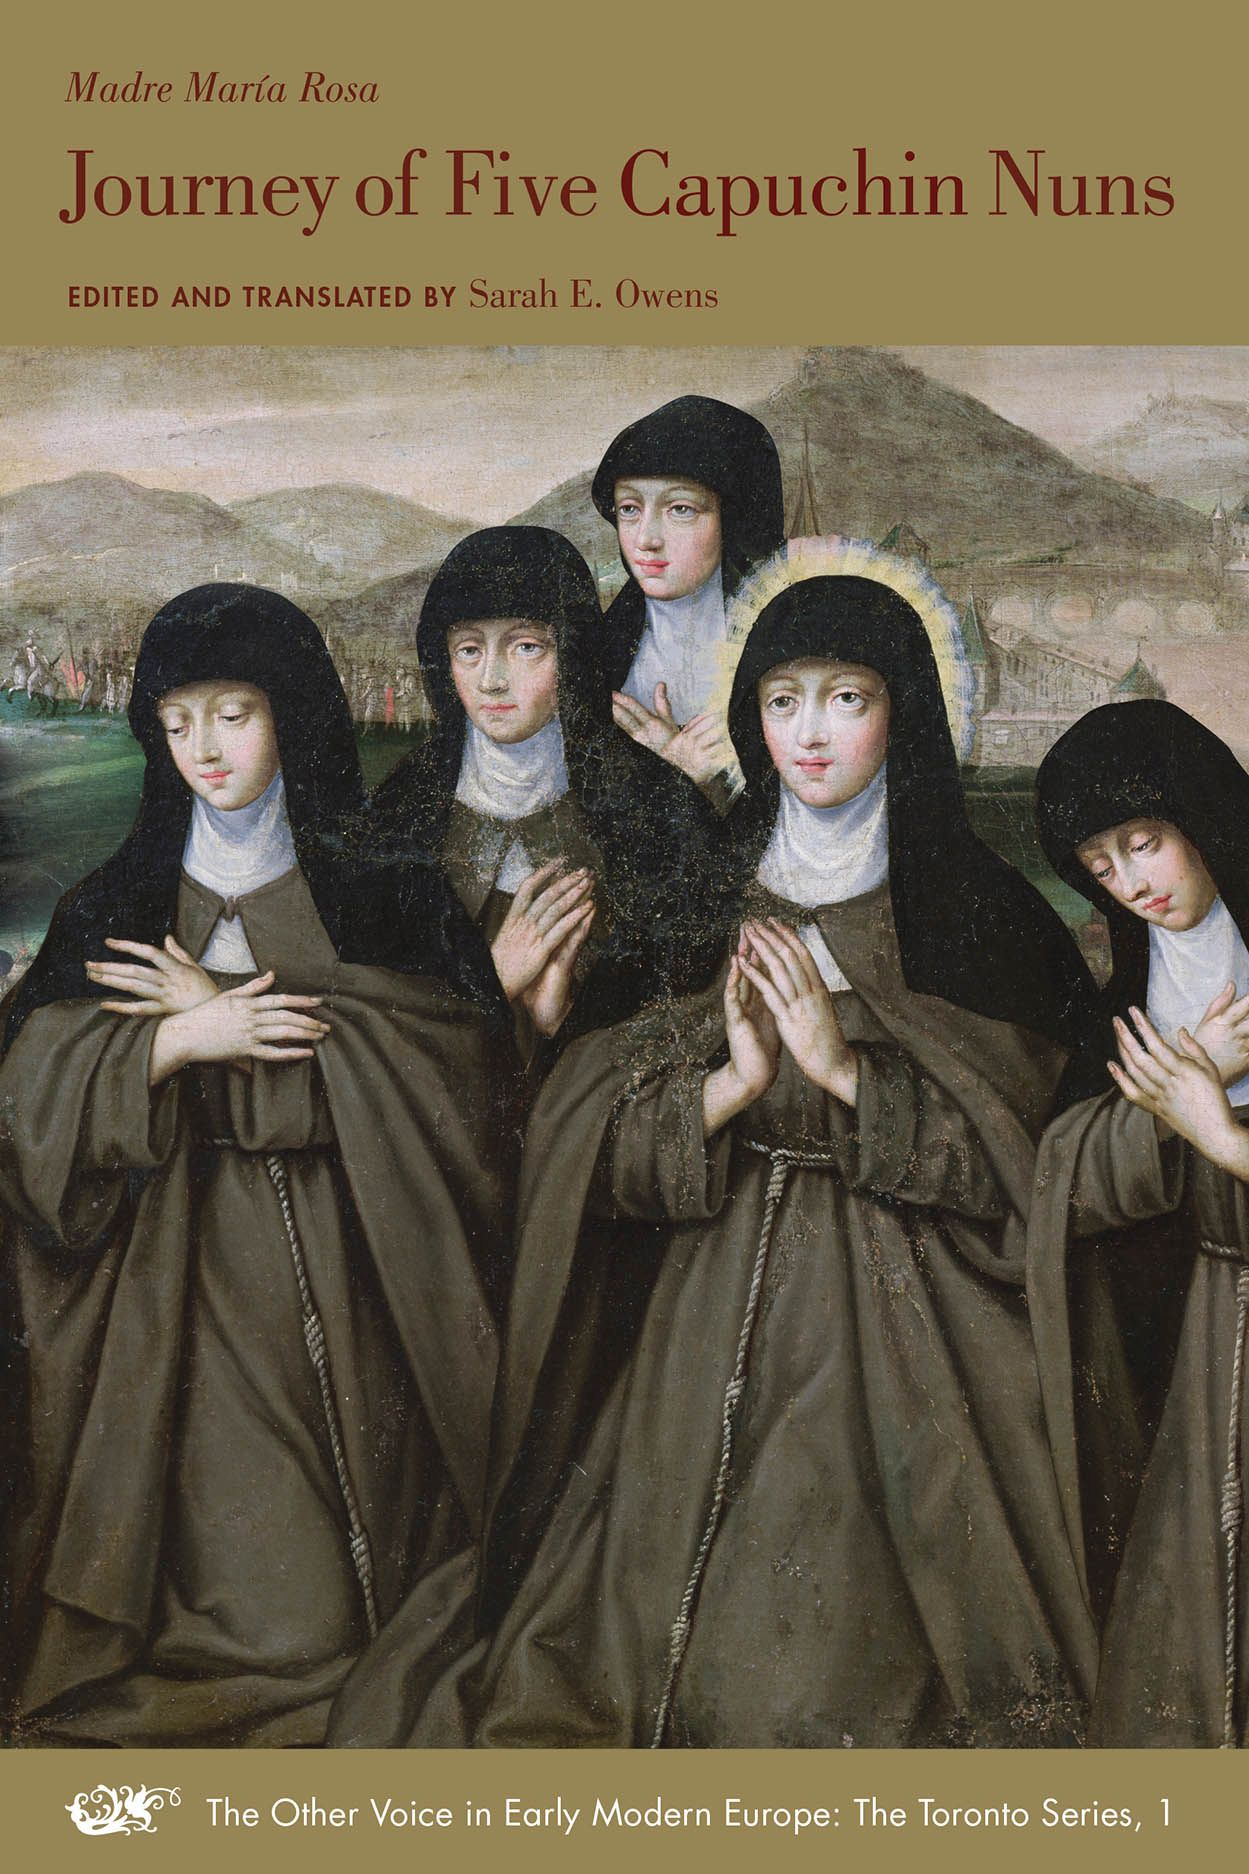 Journey of Five Capuchin Nuns